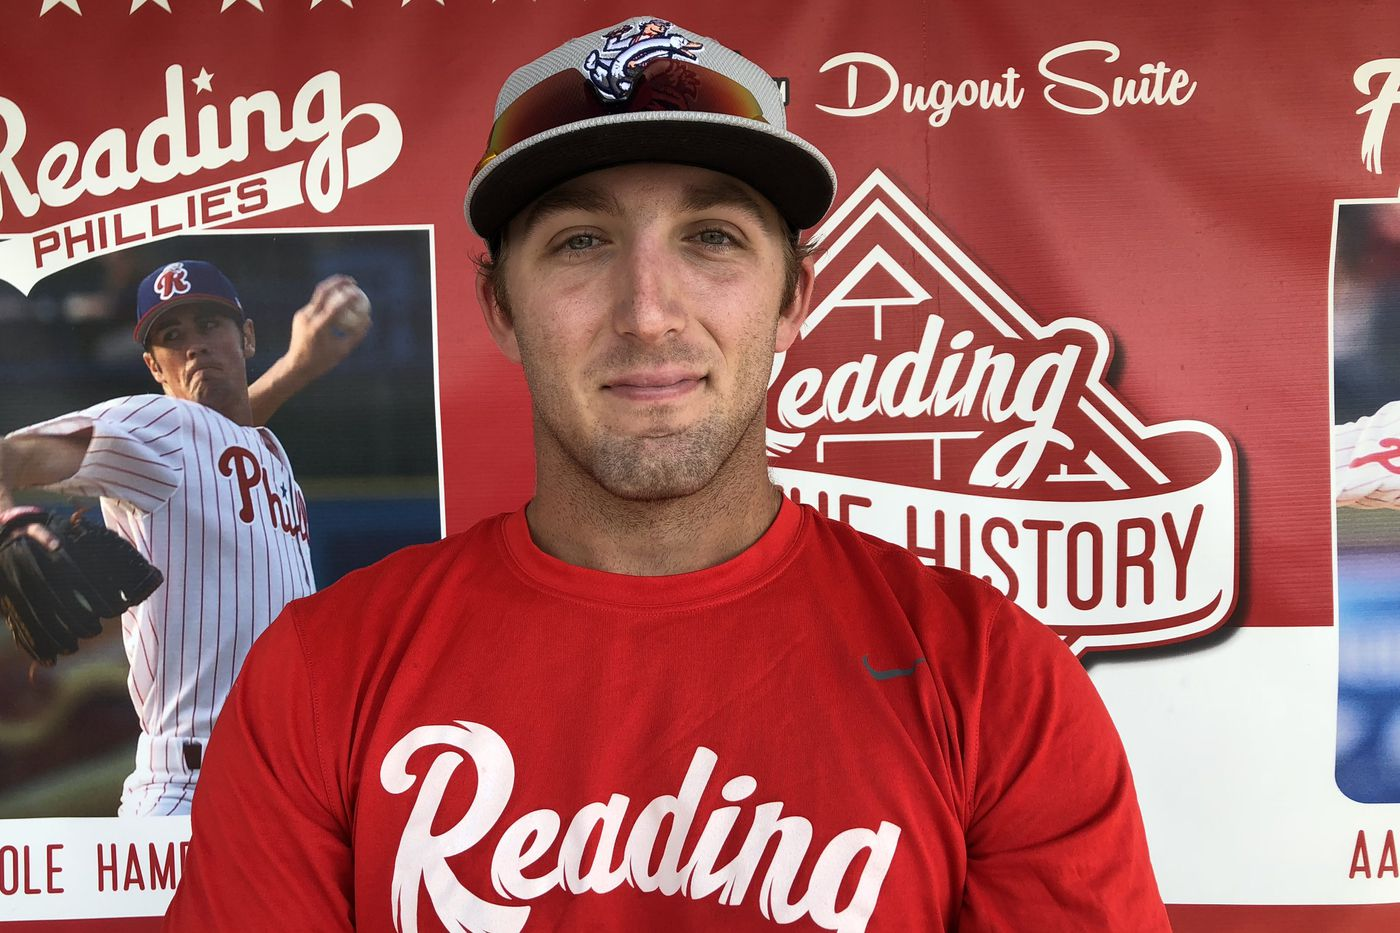 Phillies minor leagues: Darick Hall and Austin Listi are blasting homers at Reading